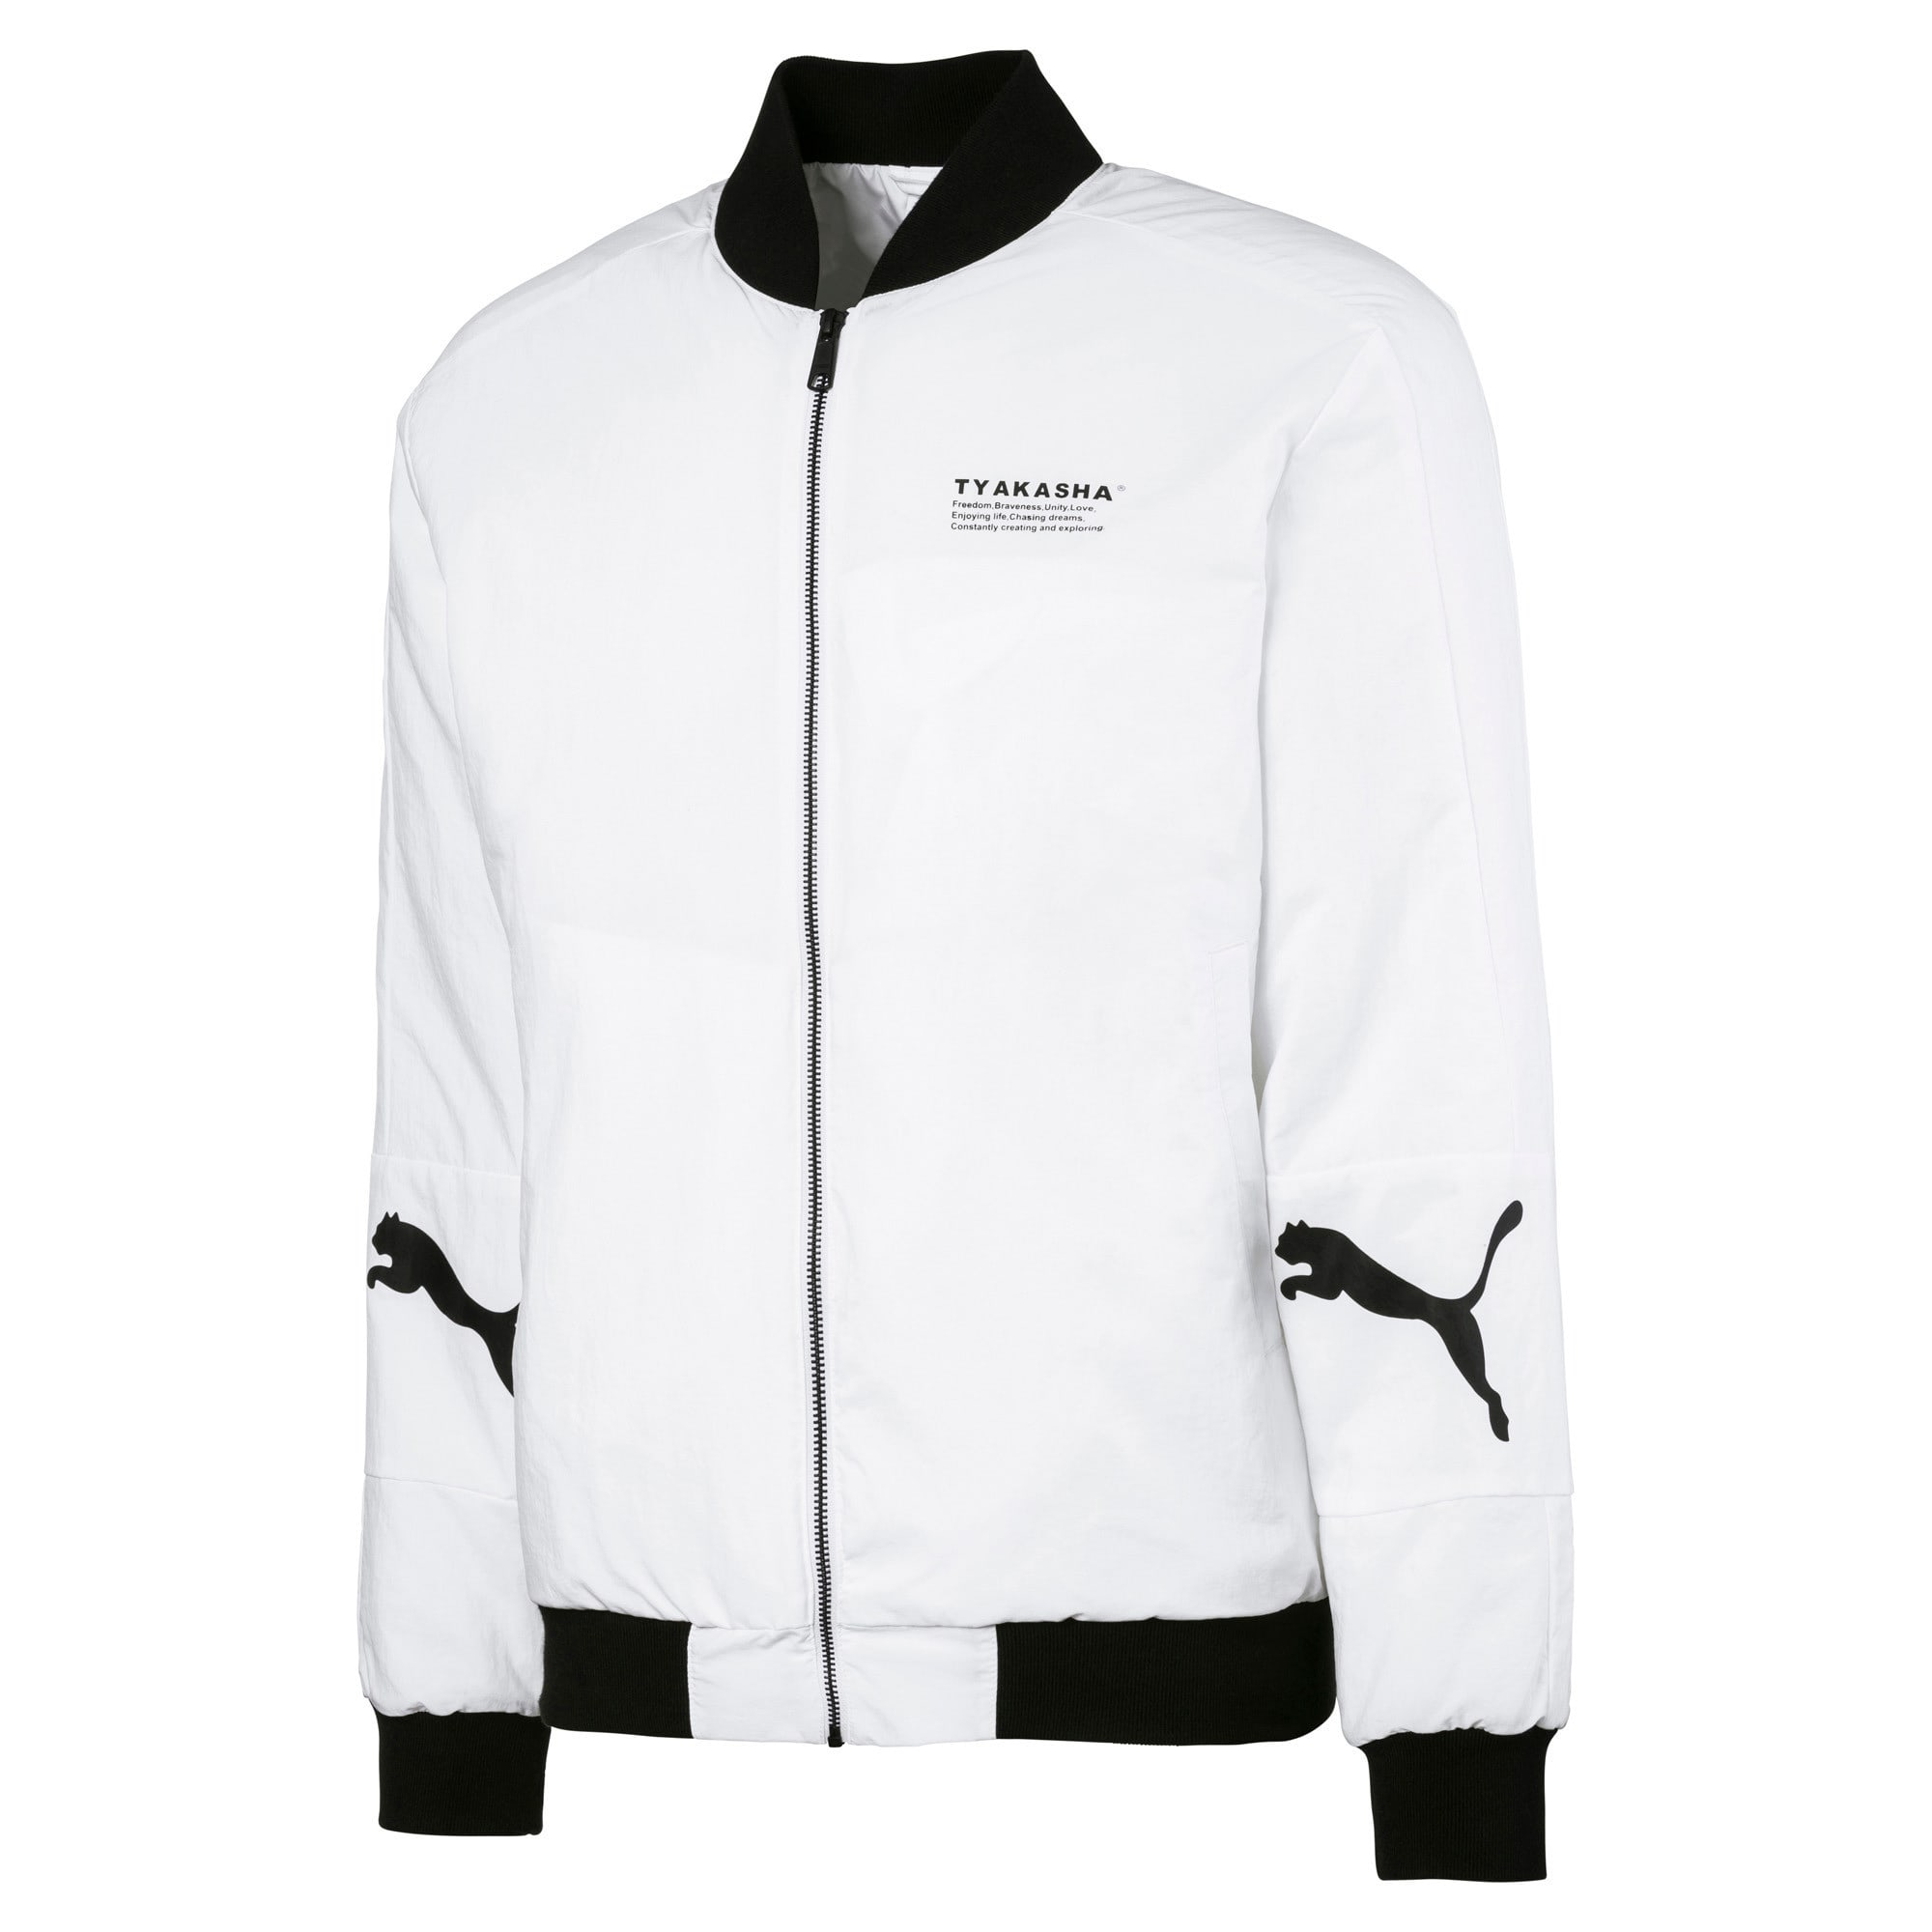 Thumbnail 1 of PUMA x TYAKASHA Woven Bomber Jacket, Puma White, medium